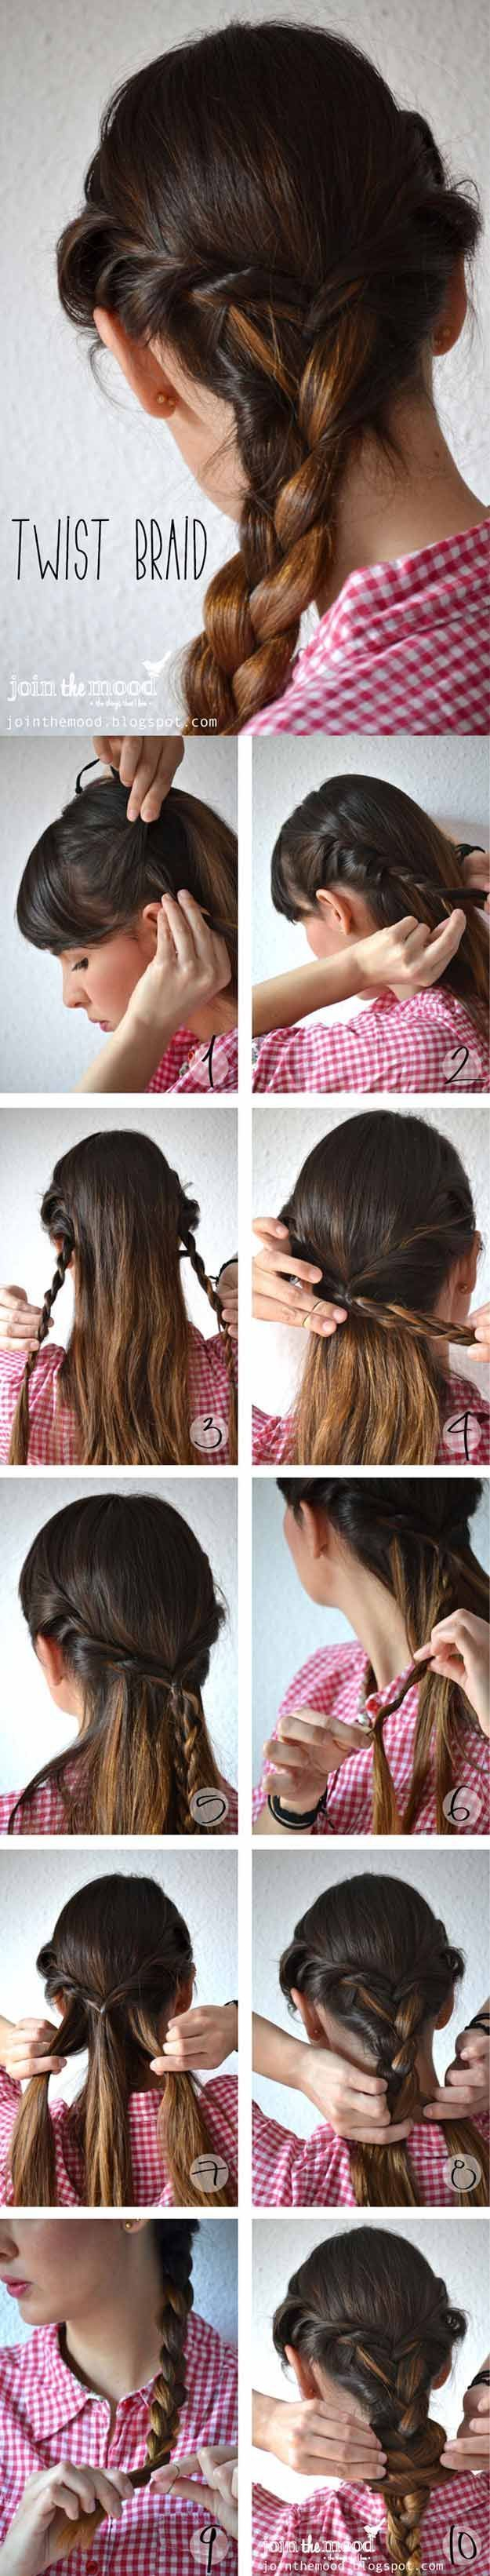 9089 best Easy hairstyles images on Pinterest